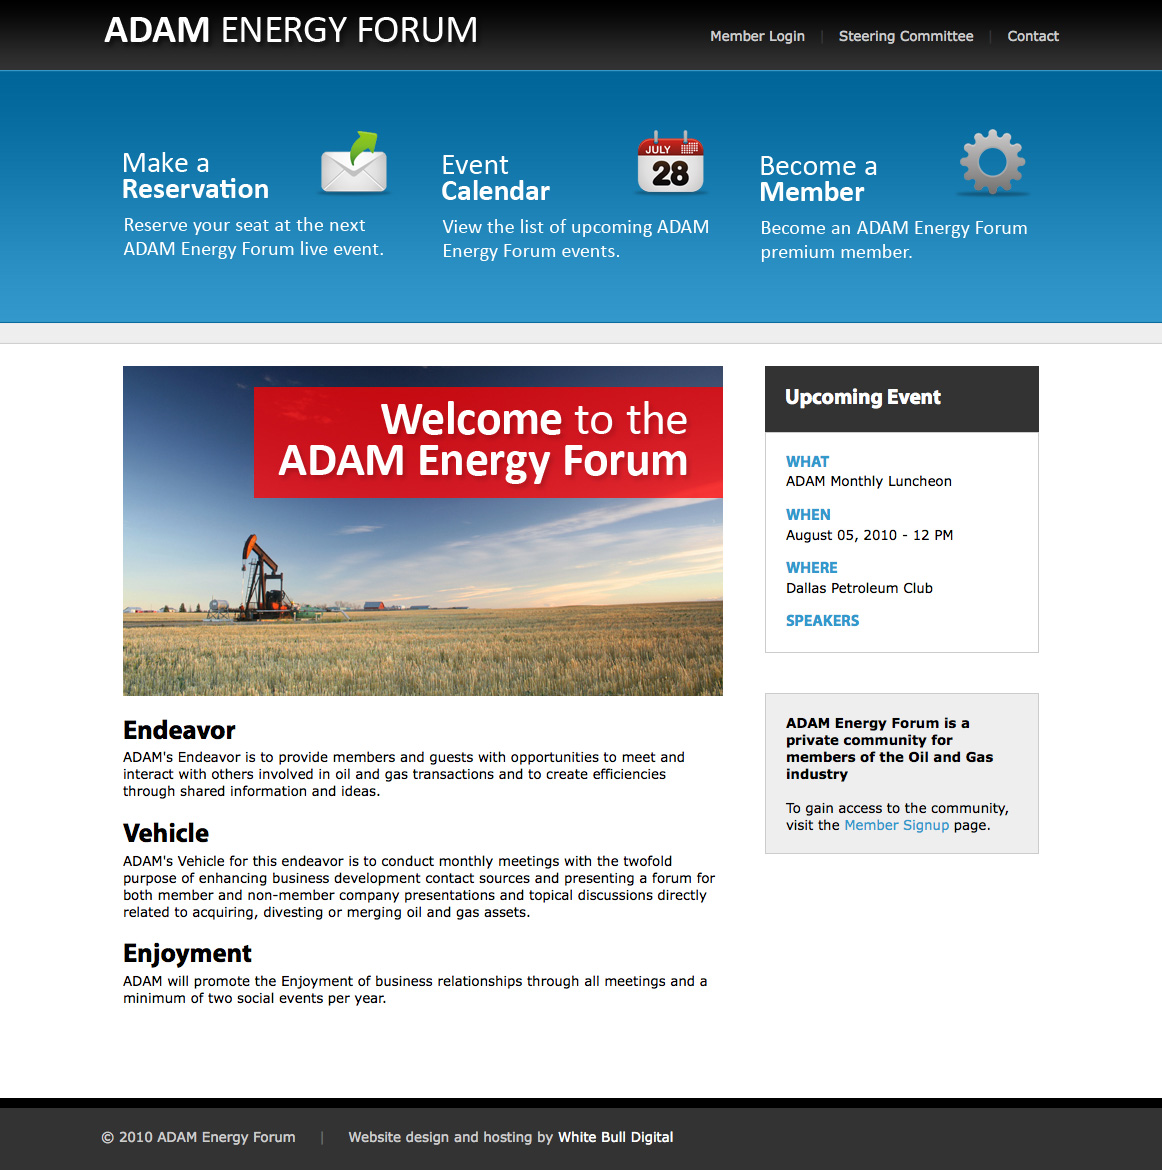 ADAM Energy Forum